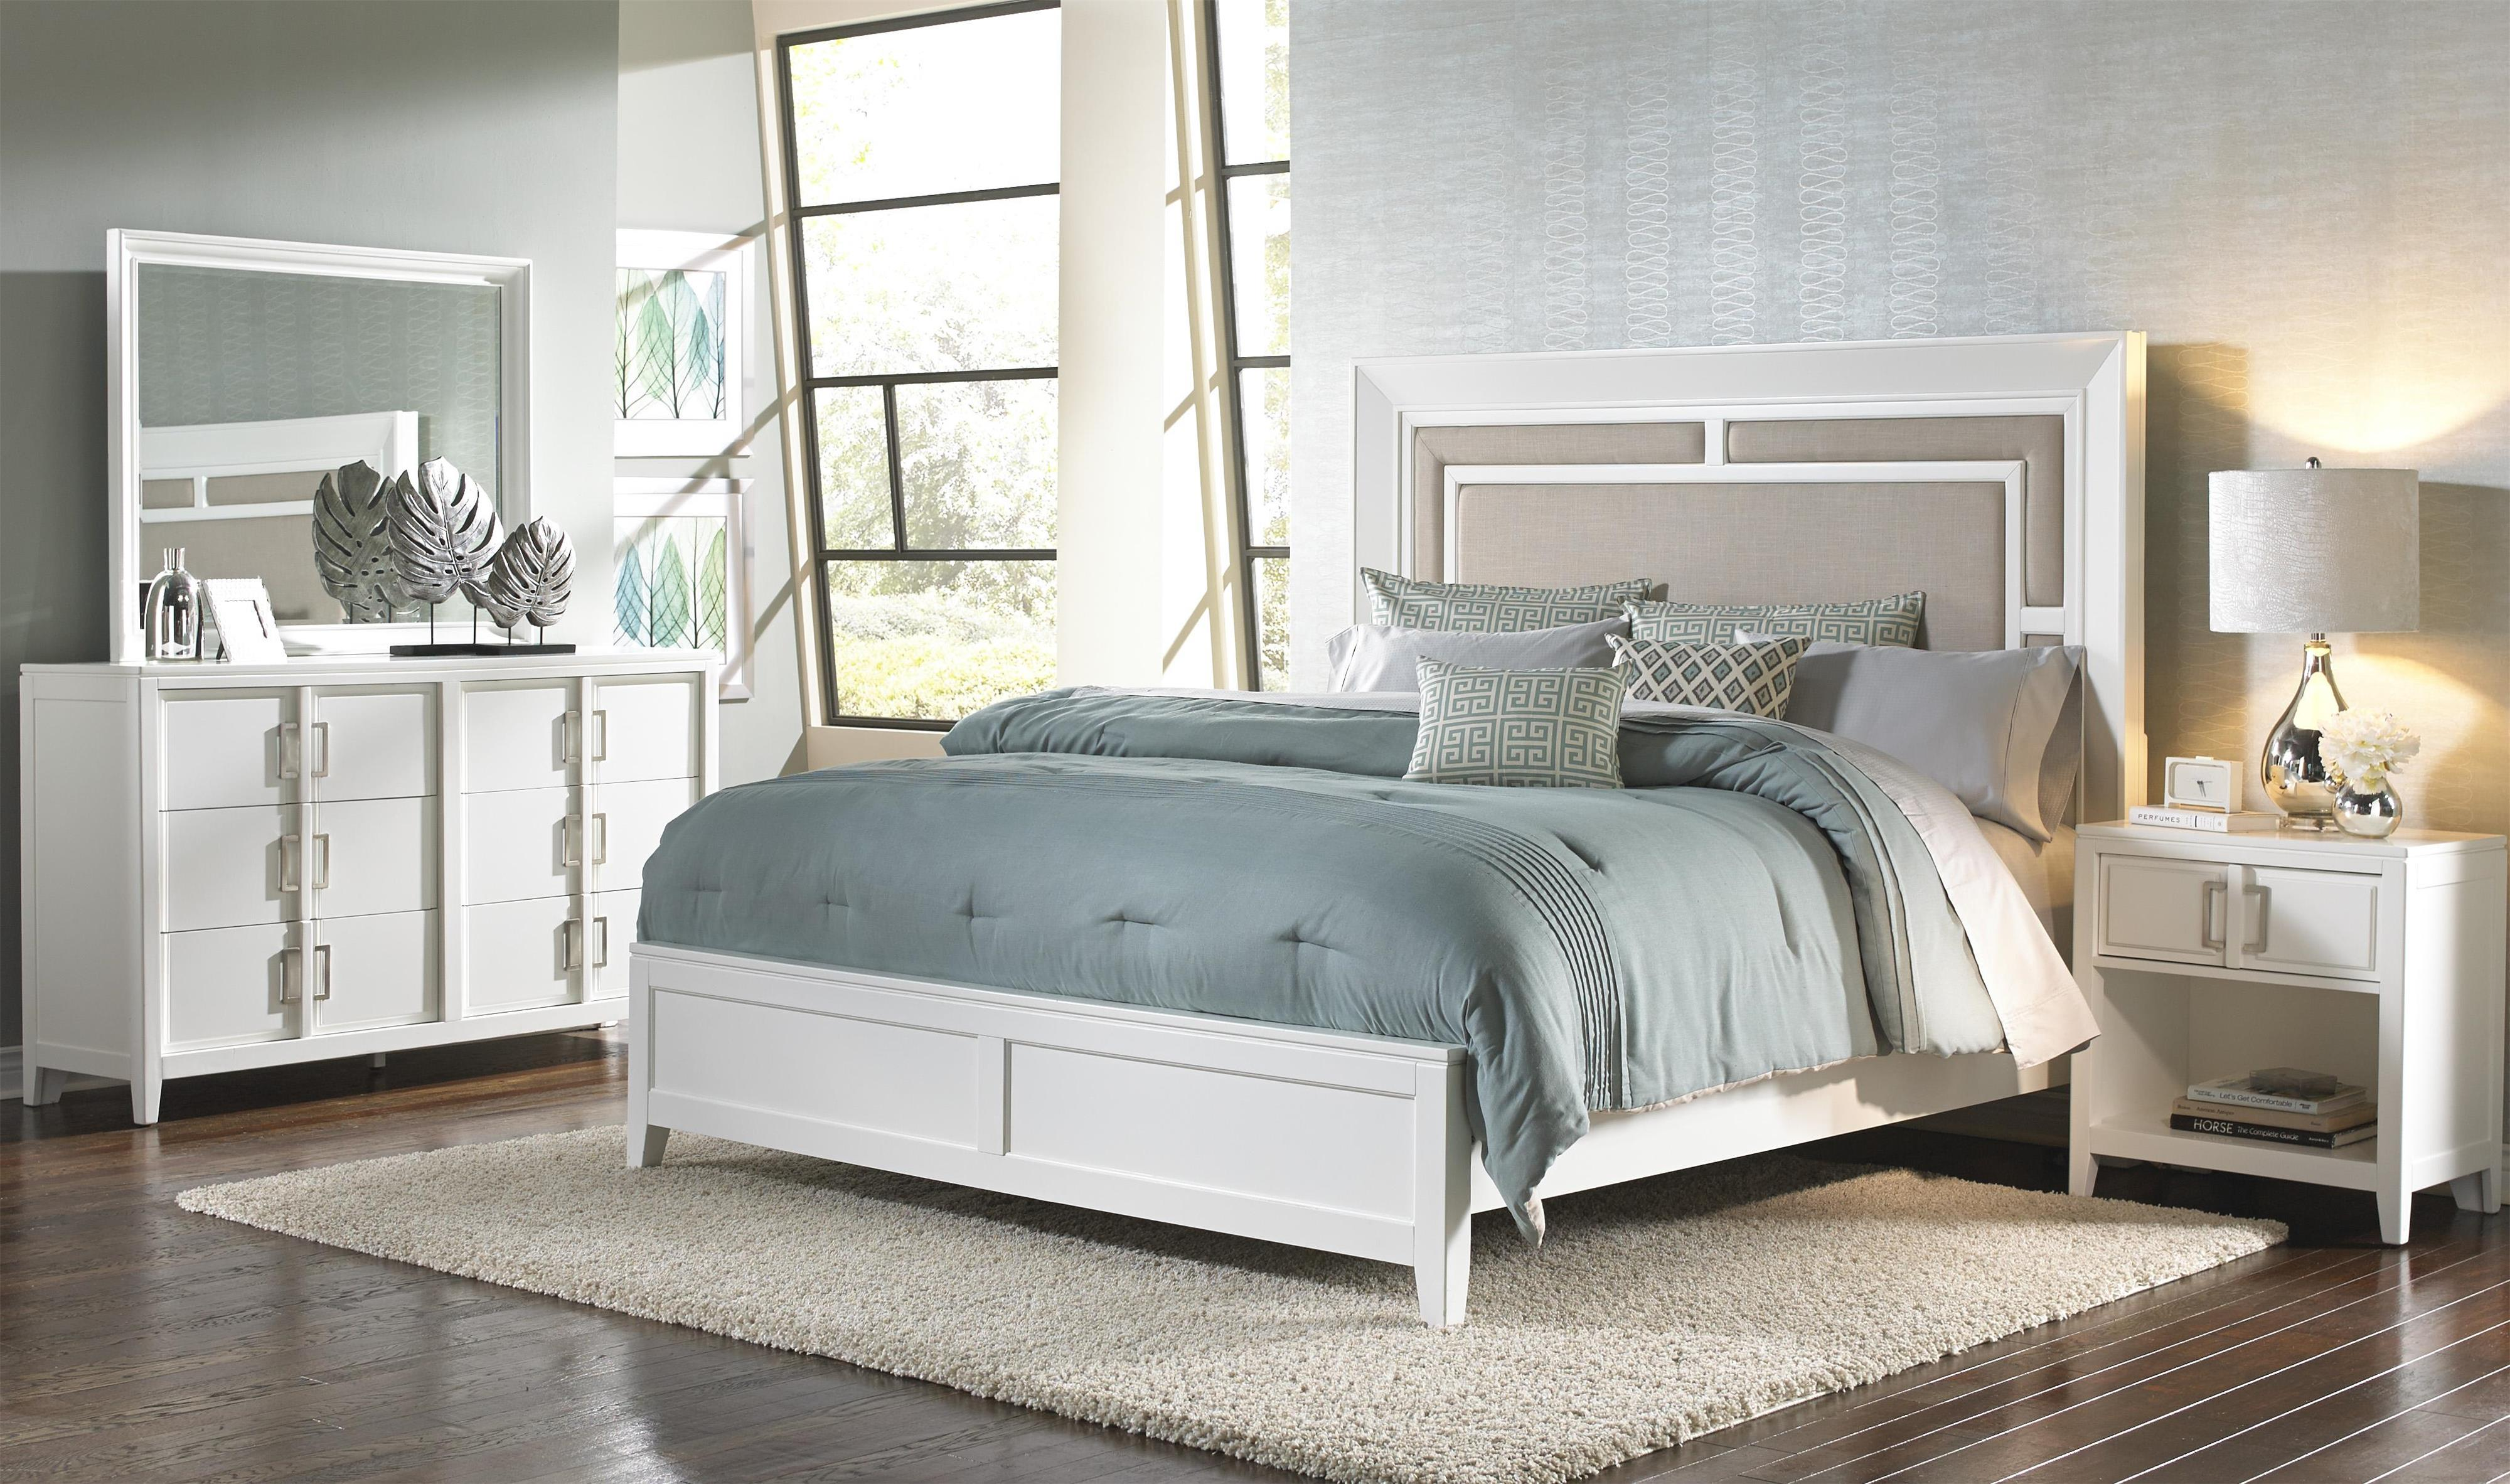 Samuel Lawrence Brighton King Bedroom Group - Item Number: 8673 K Bedroom Group 2